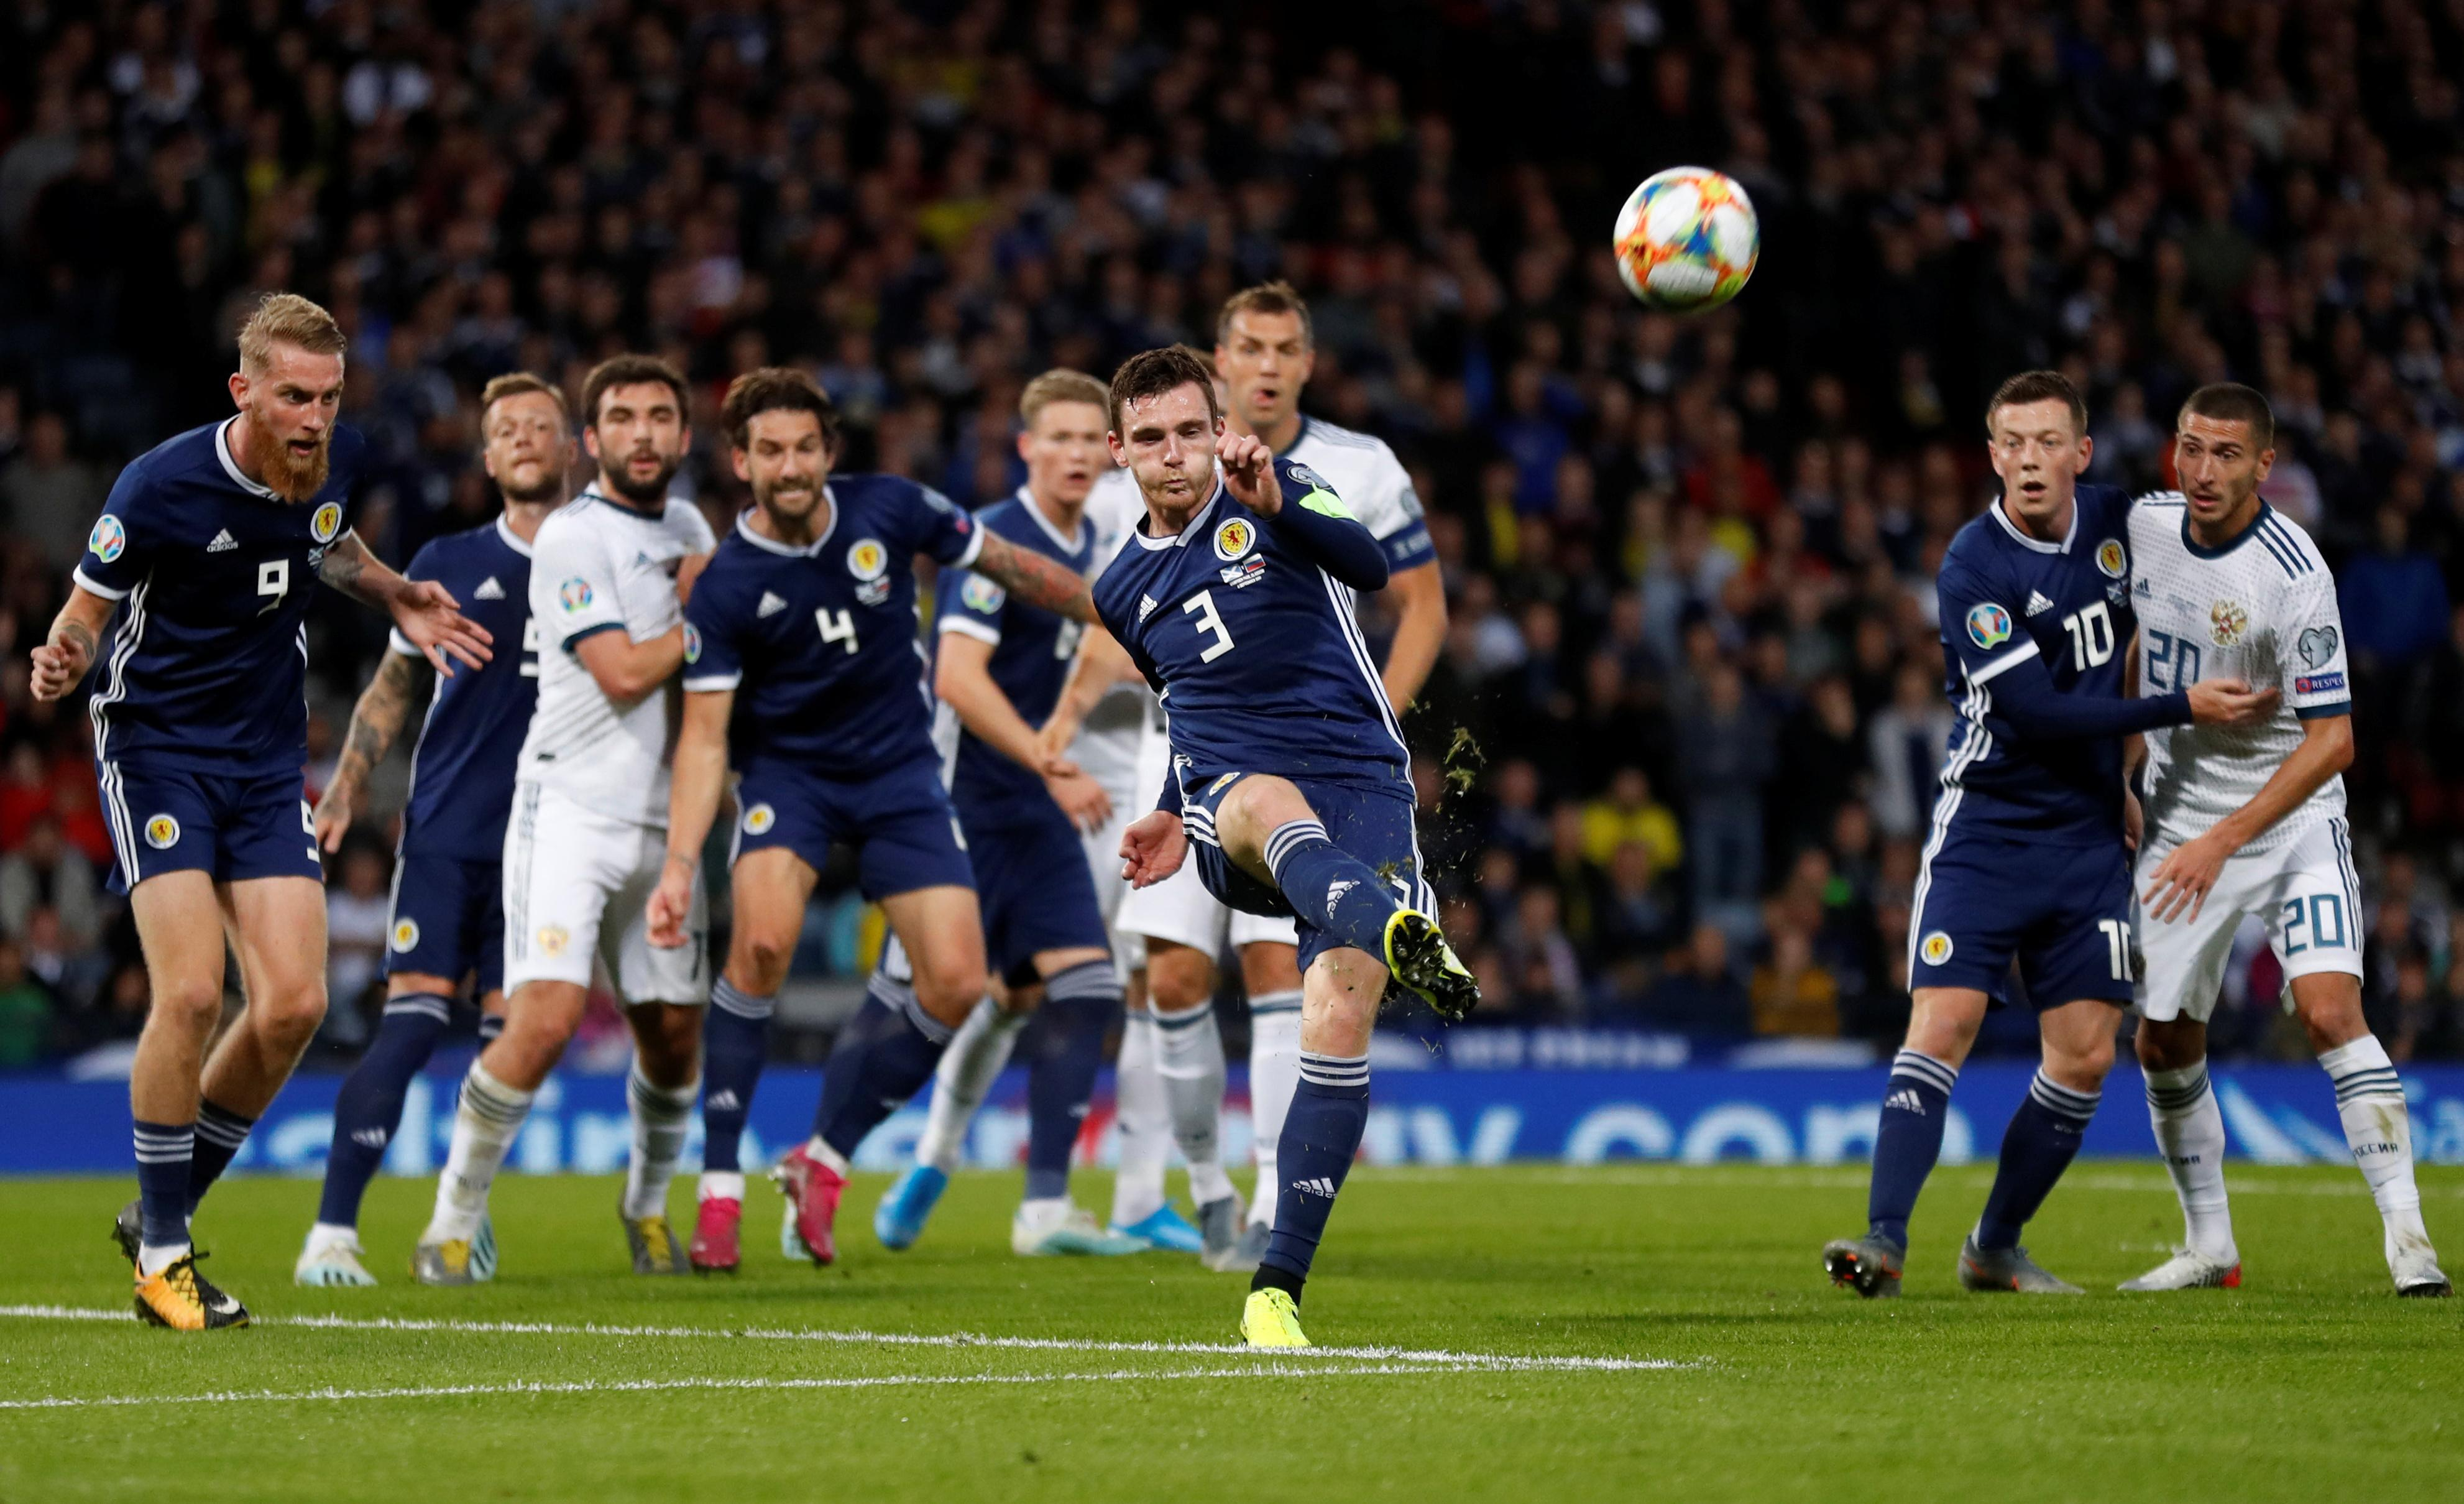 Scotland captain Robertson says defeat by Russia a career low